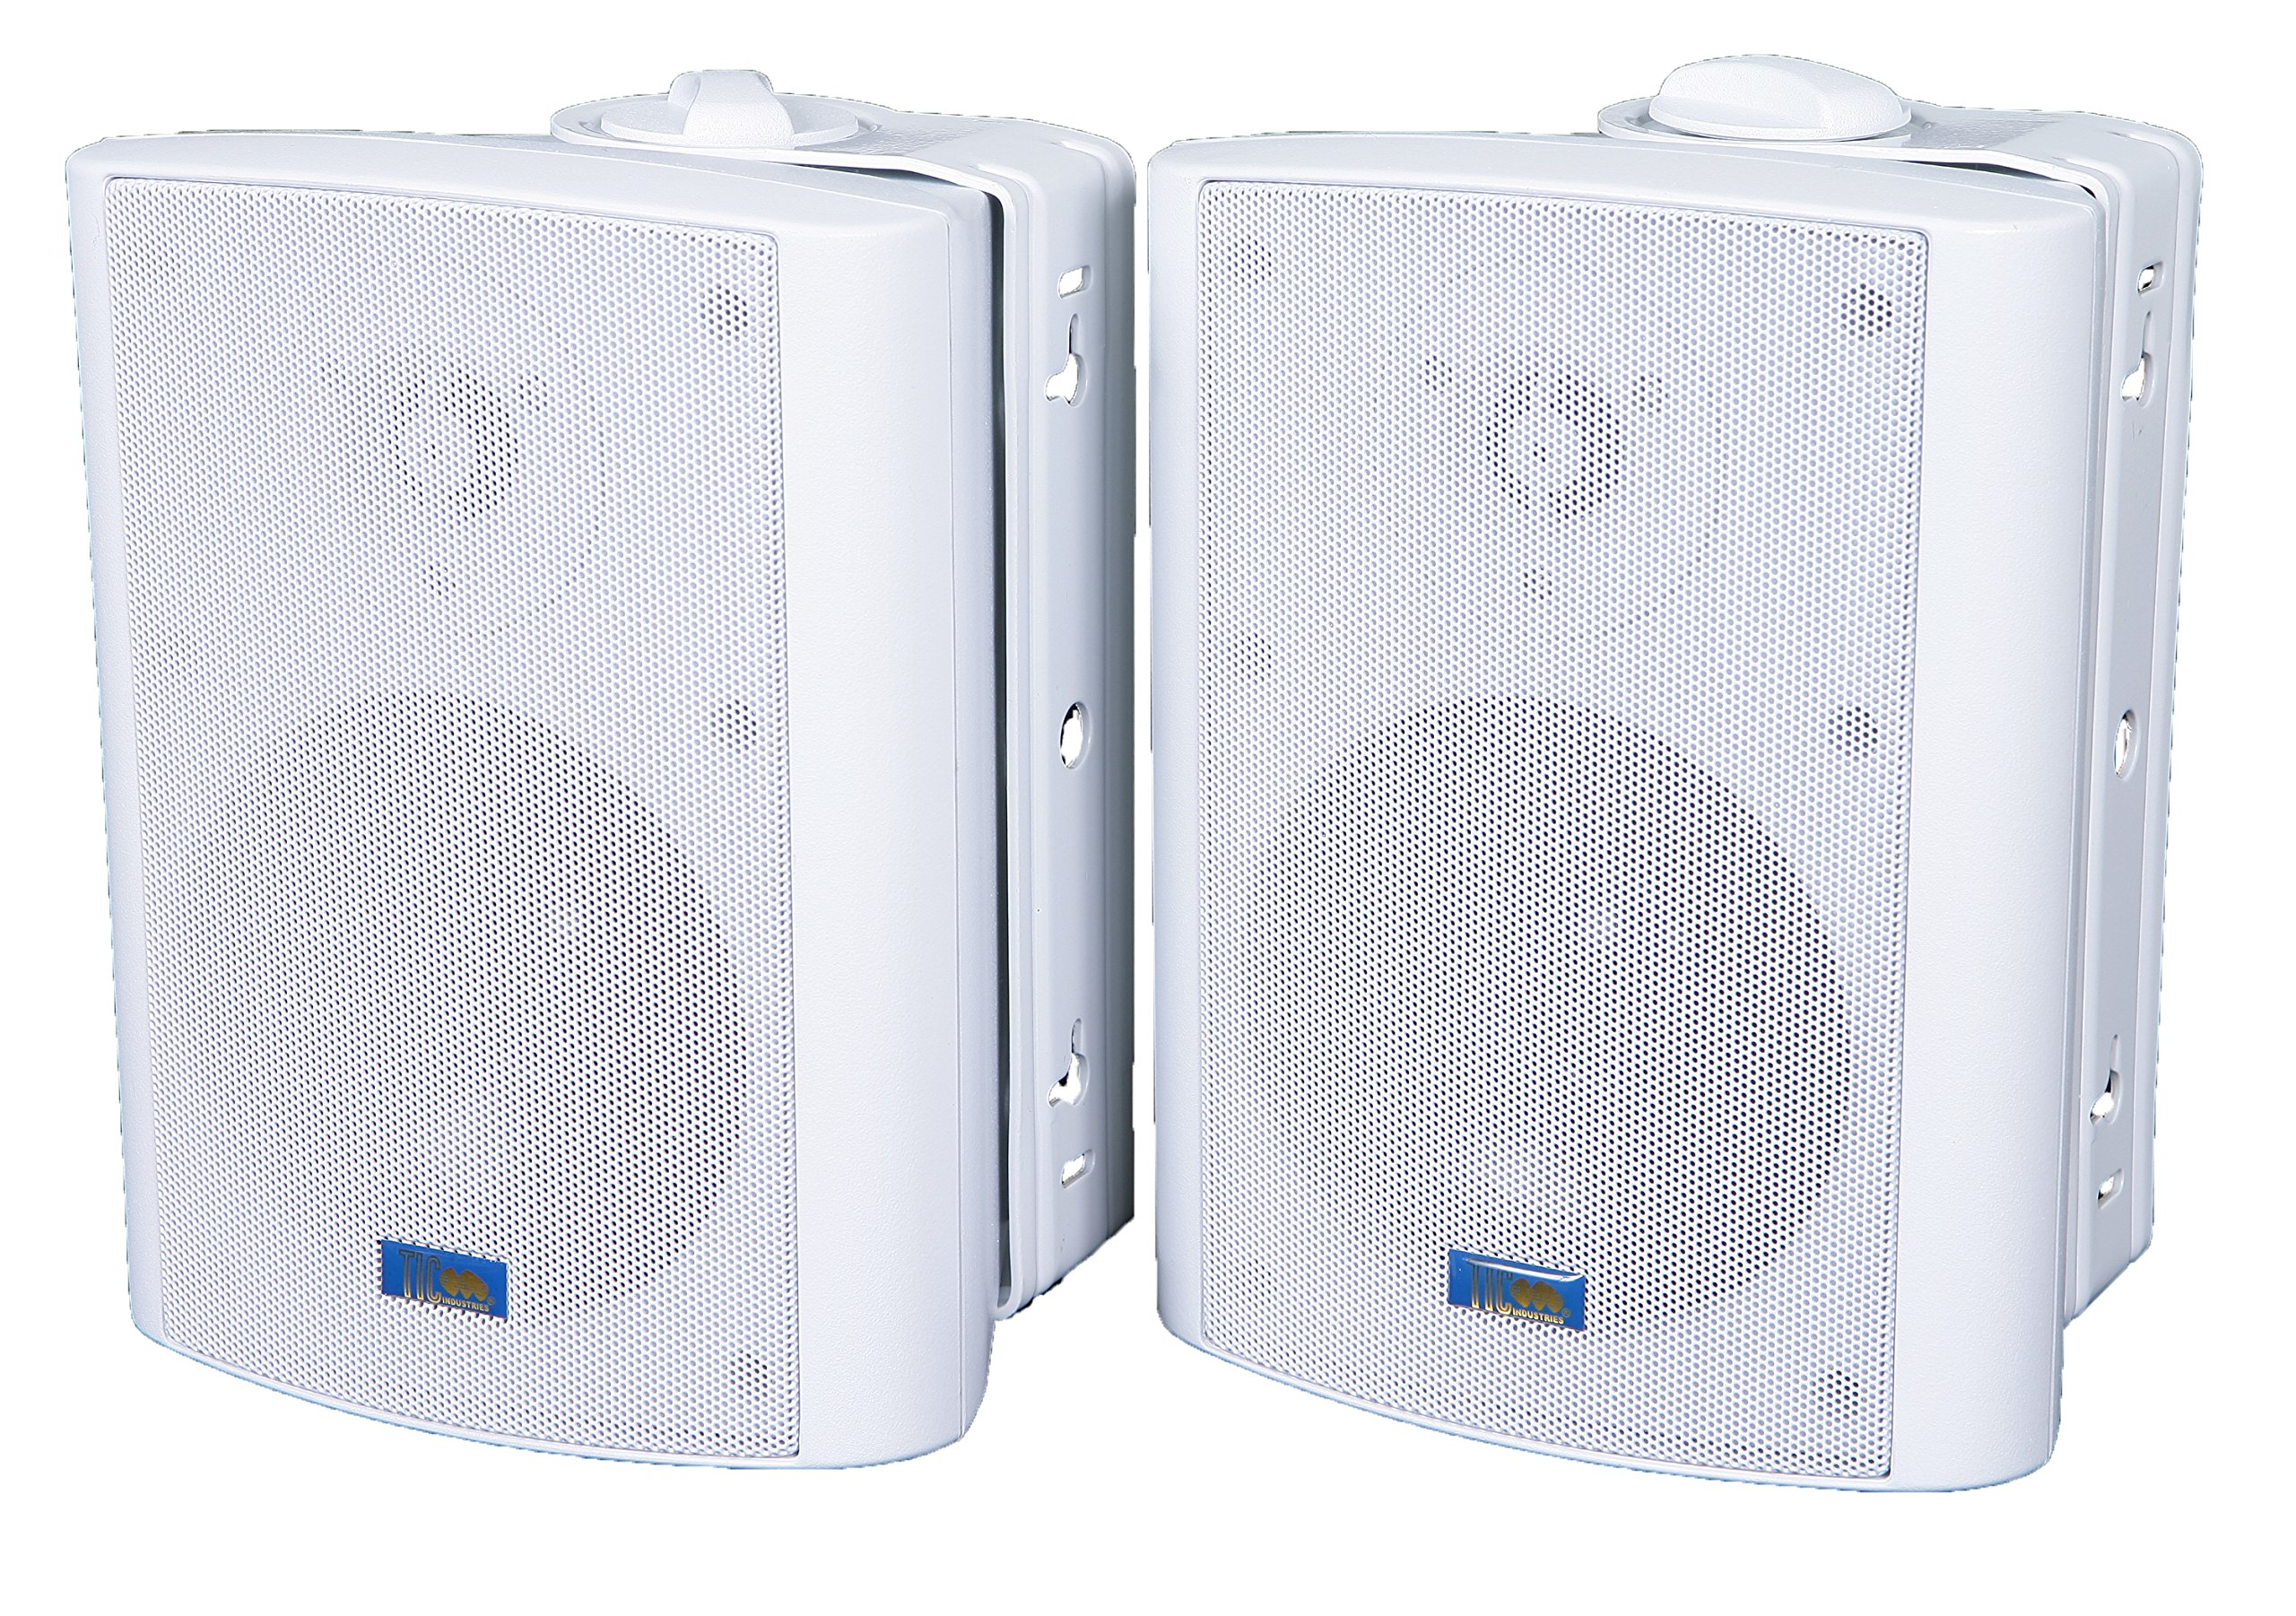 TIC ASP60-W 5'' Outdoor Weather-Resistant Patio Speakers with 70v Switch (Pair) - White